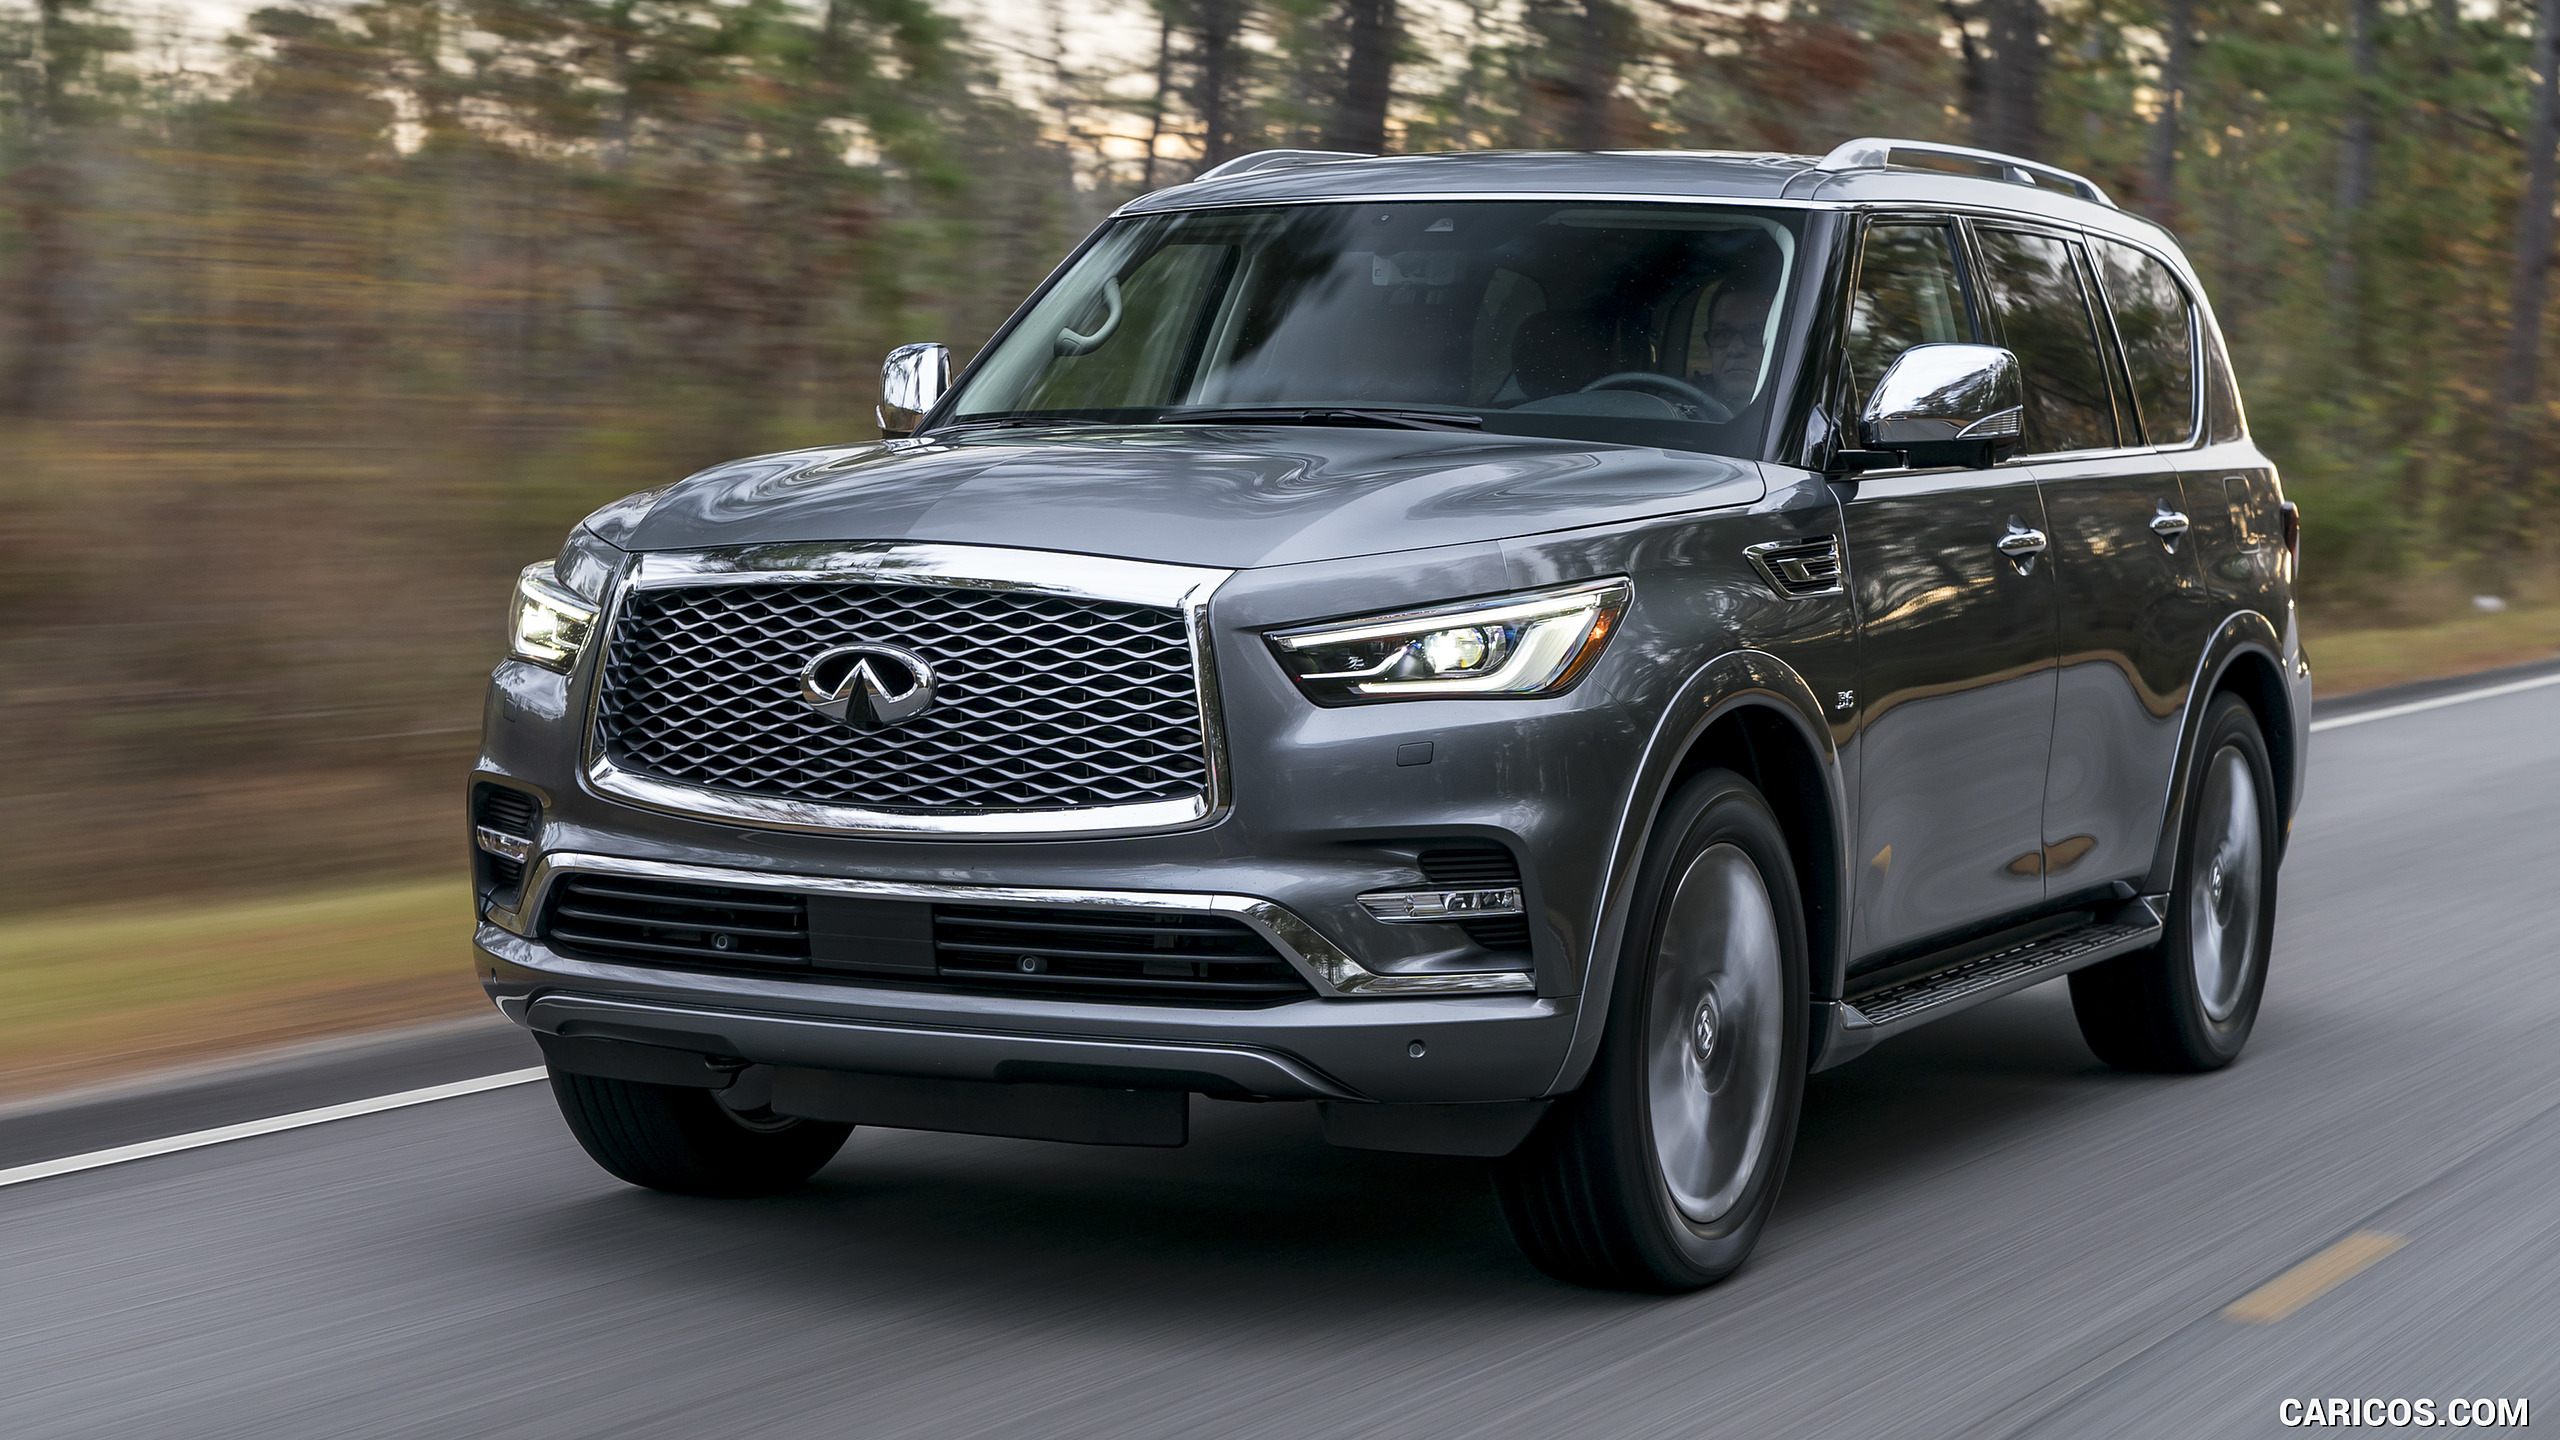 2560x1440 - Infiniti QX80 Wallpapers 35